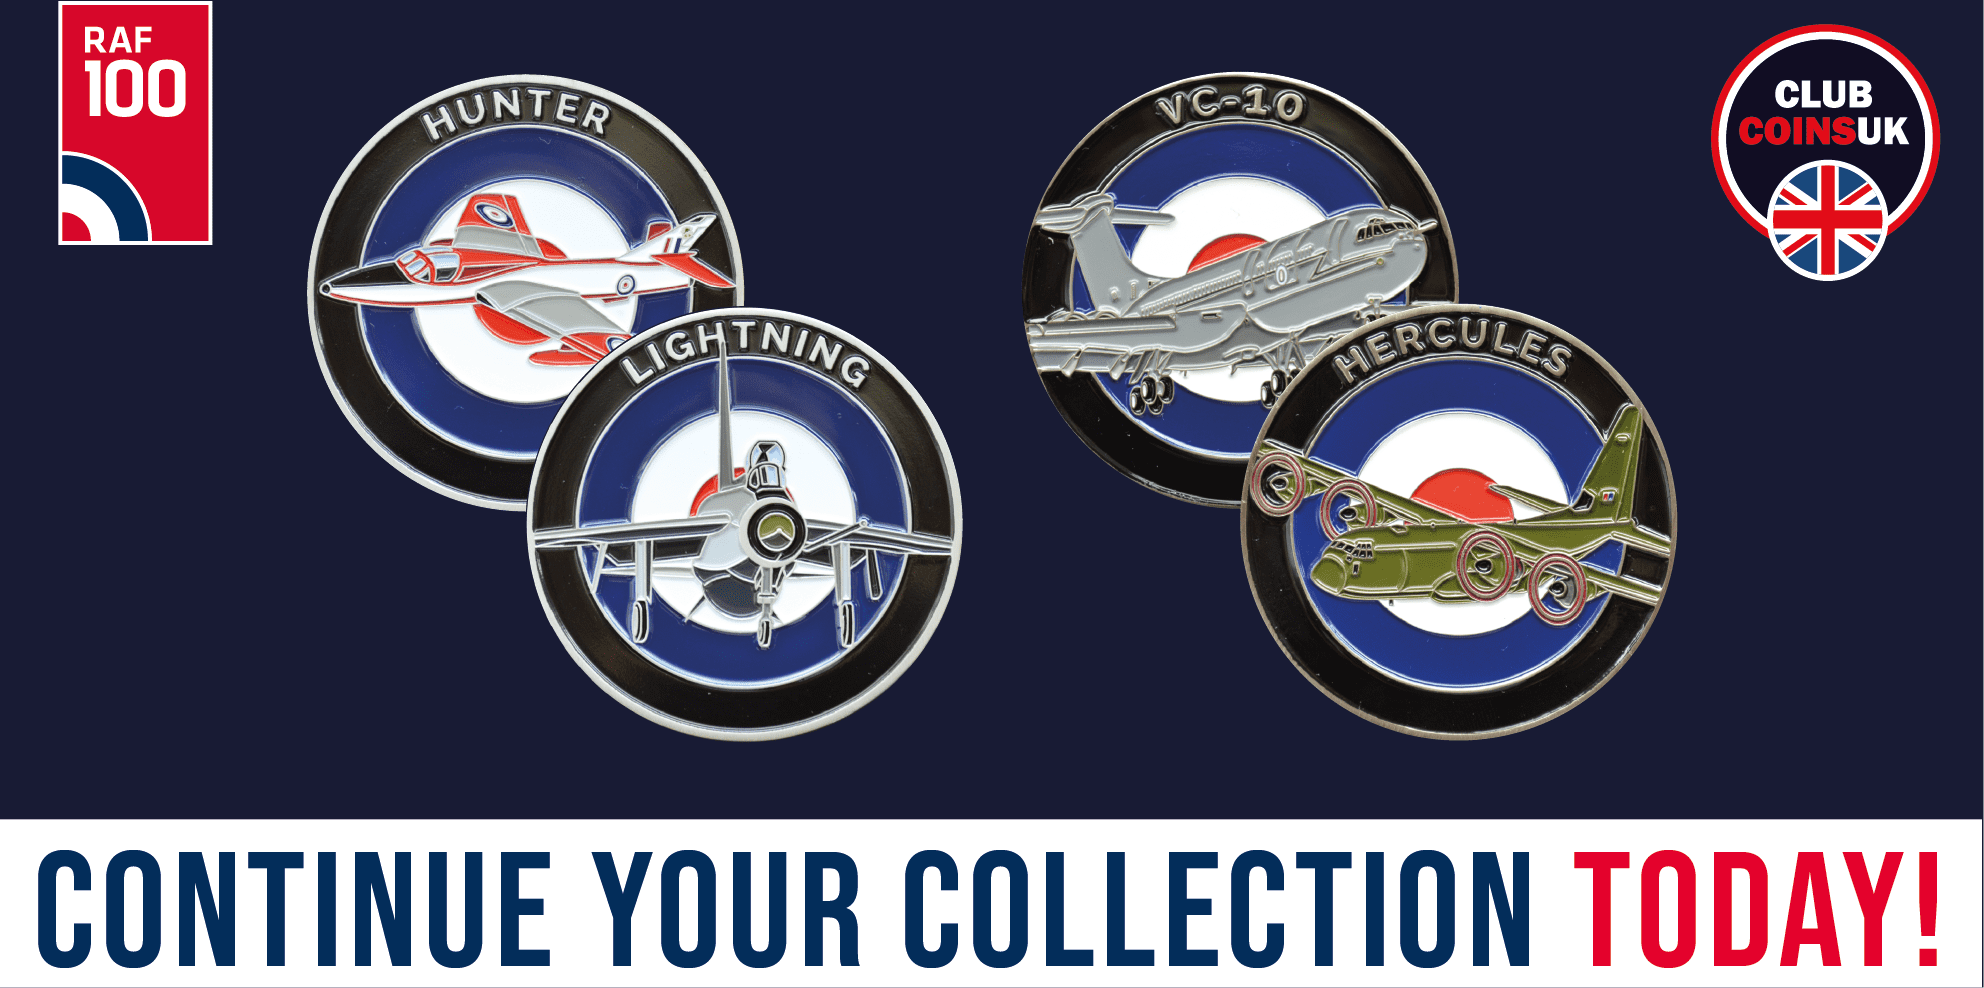 RAF100 Series- Club Coins UK - C130 Hercules - VC10 - Lightning - Hunter